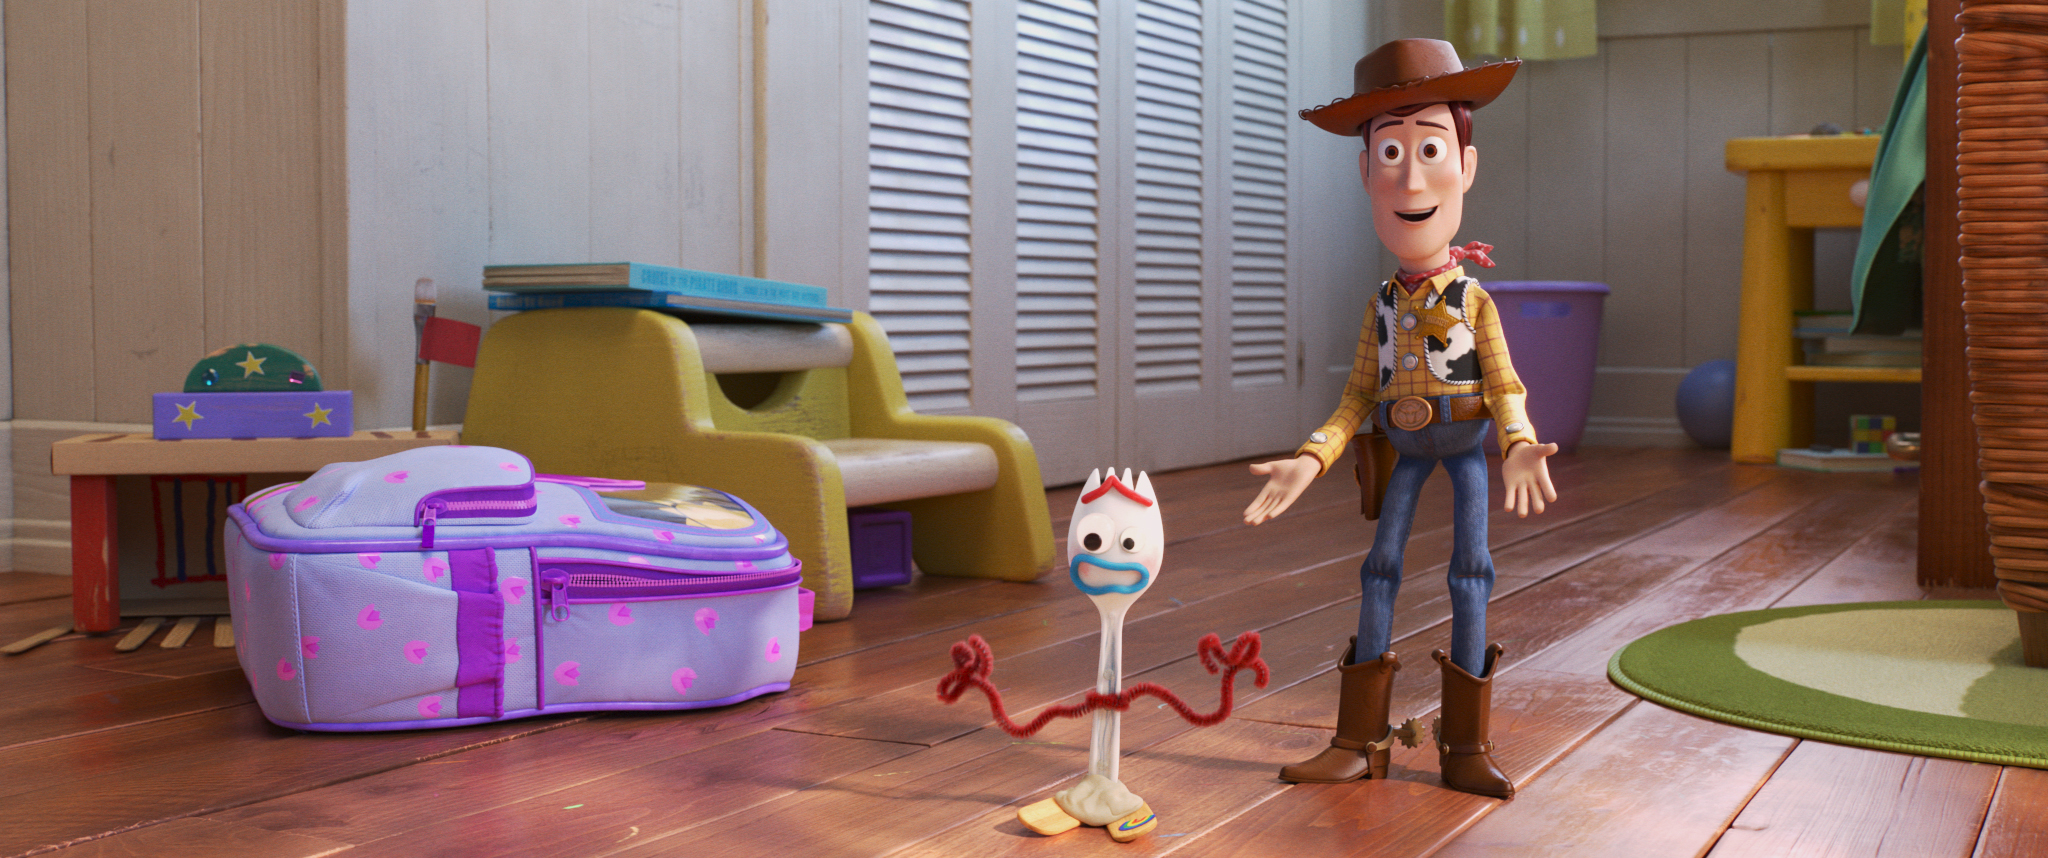 Toy Story 4 is a marvel — and should be the last Toy Story movie we get